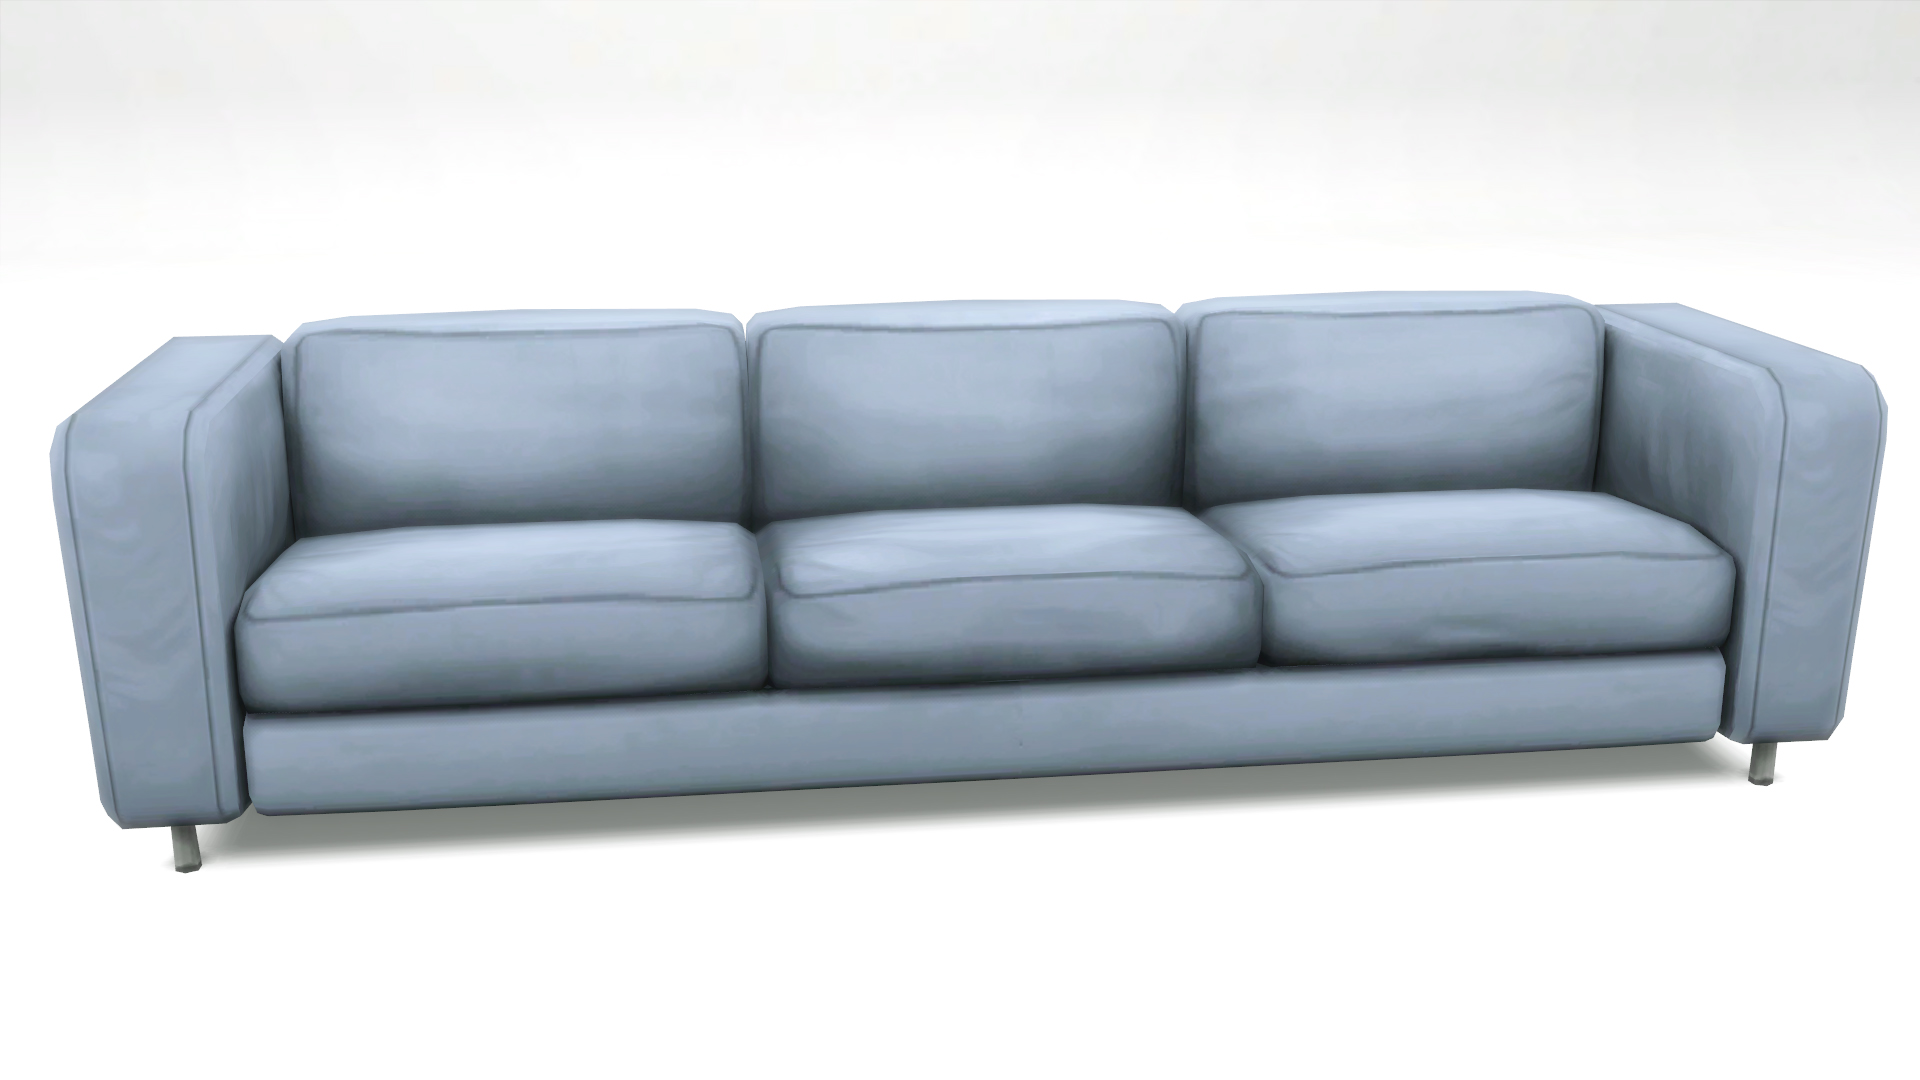 Mod the sims catharti couch sims 3 conversion for 3 on a couch